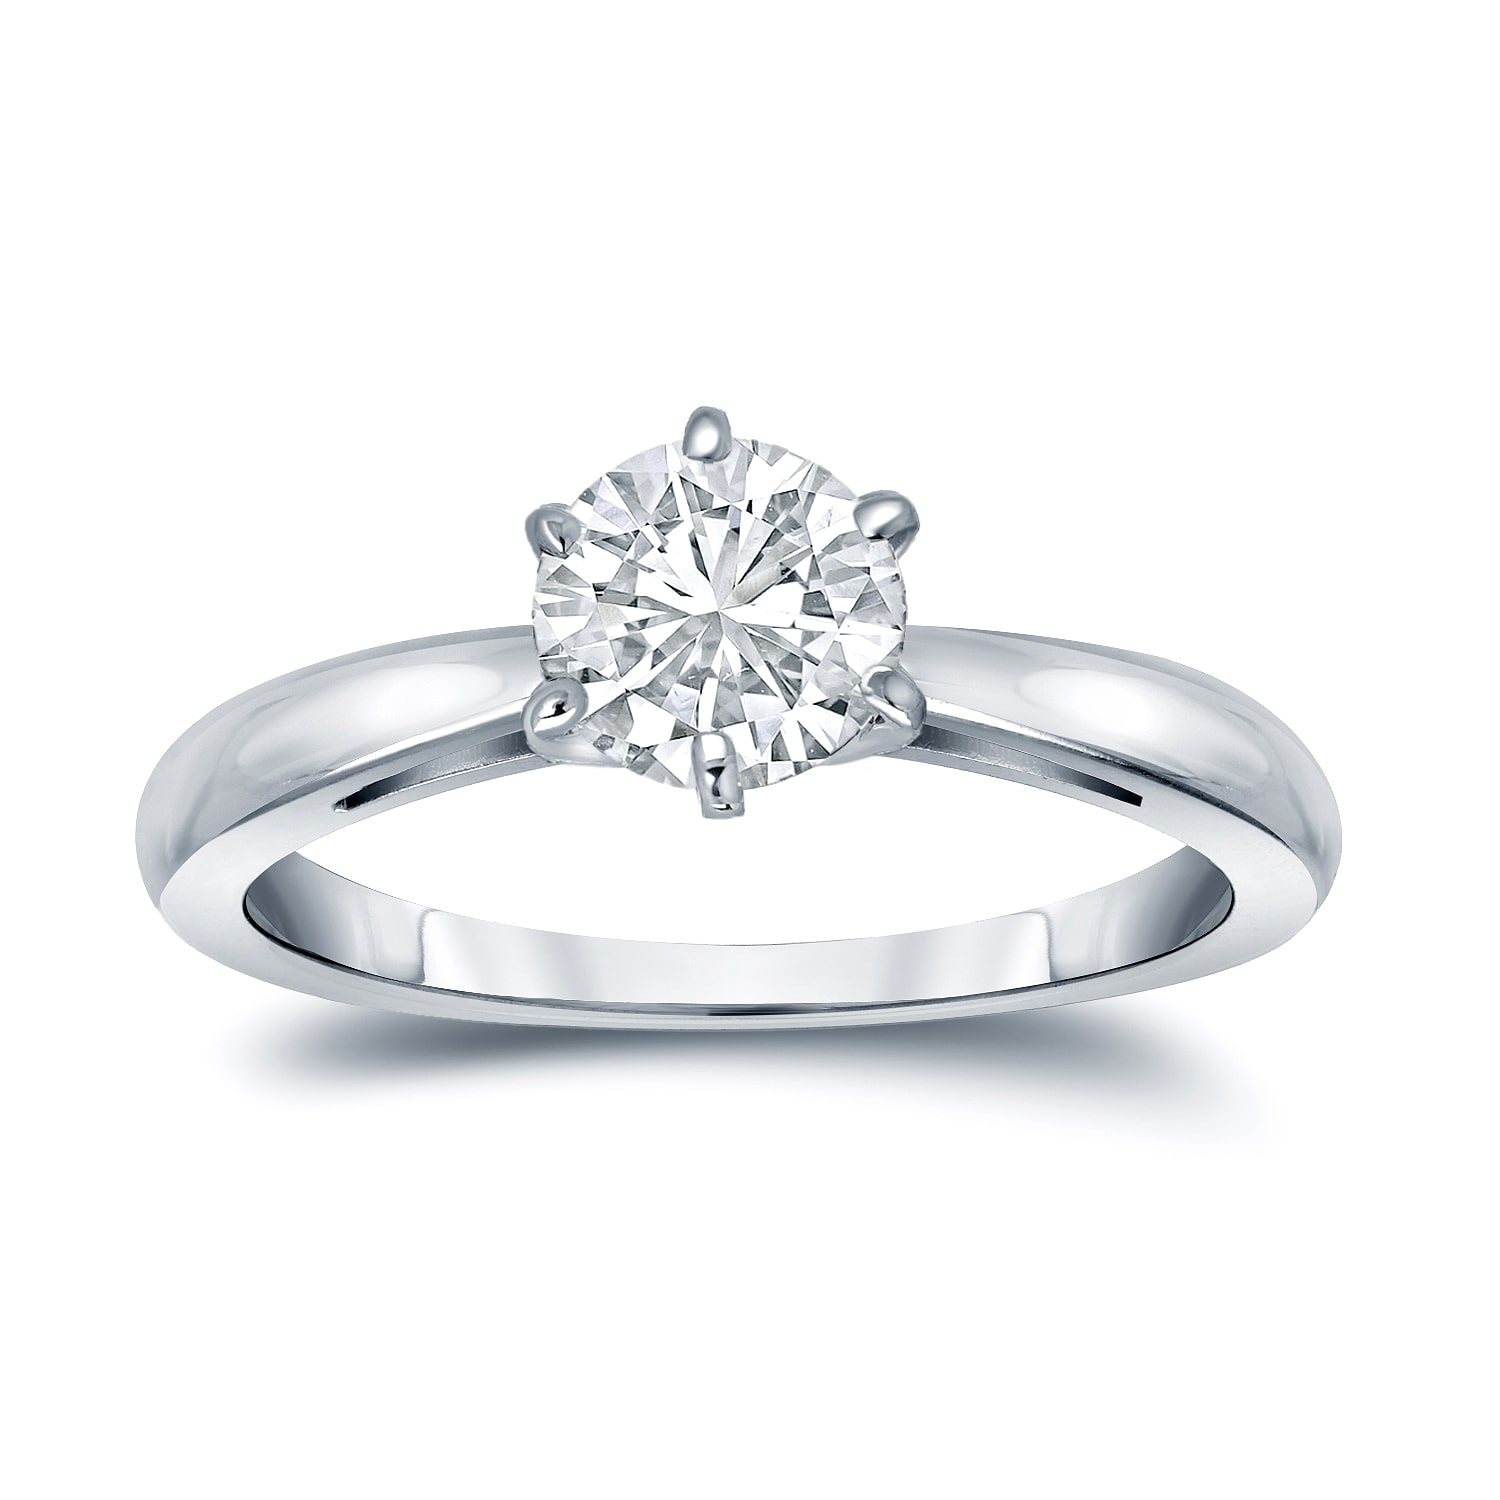 Auriya  GIA Certified 14k White Gold 6-Prong 1.75 ct. TDW Round-Cut Diamond Solitaire